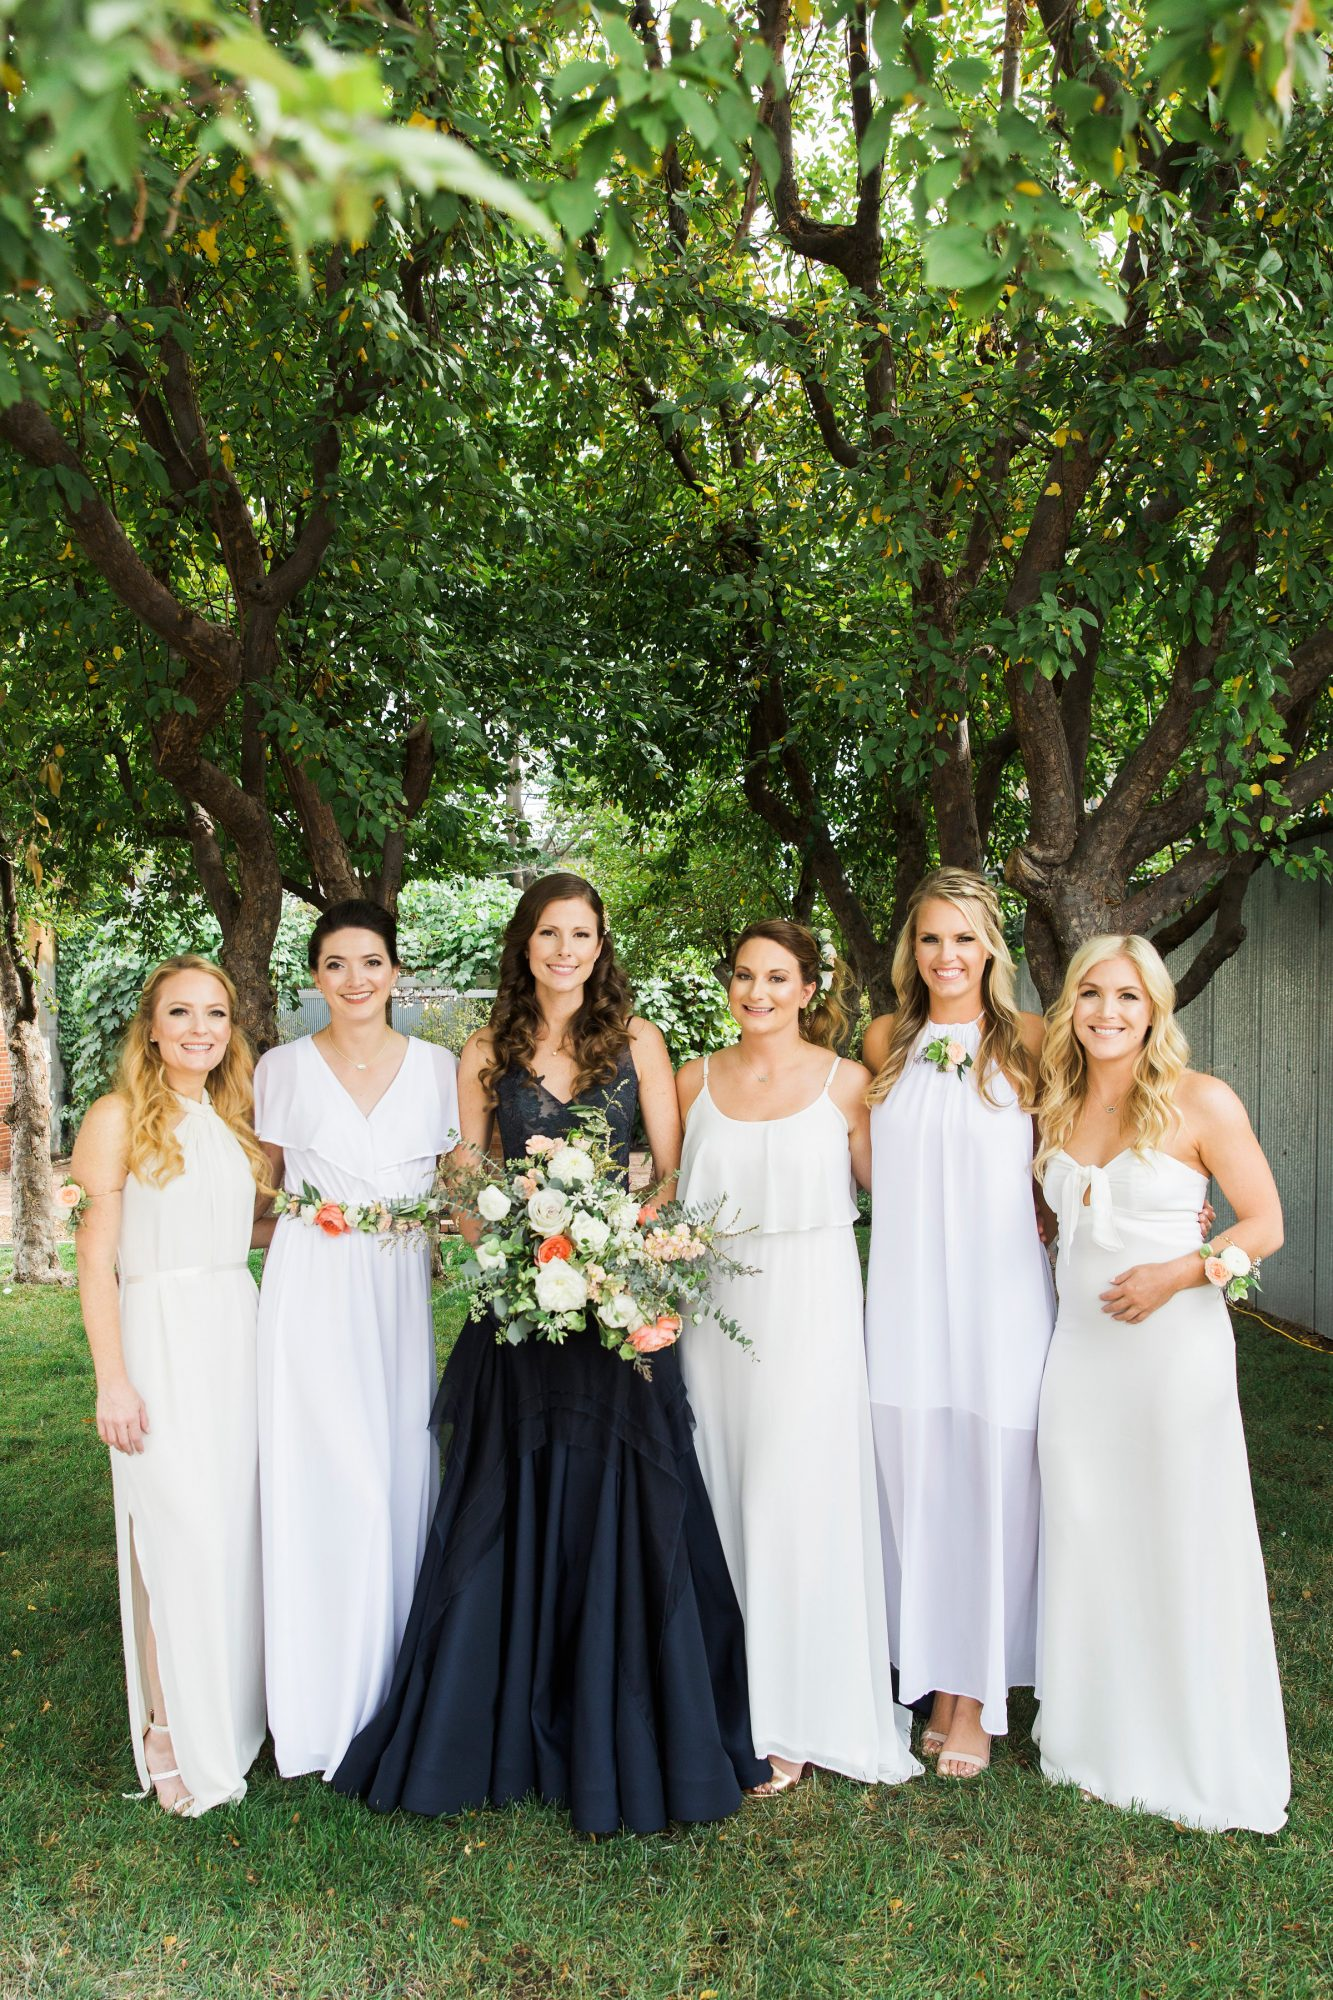 Different White Bridesmaids' Dresses